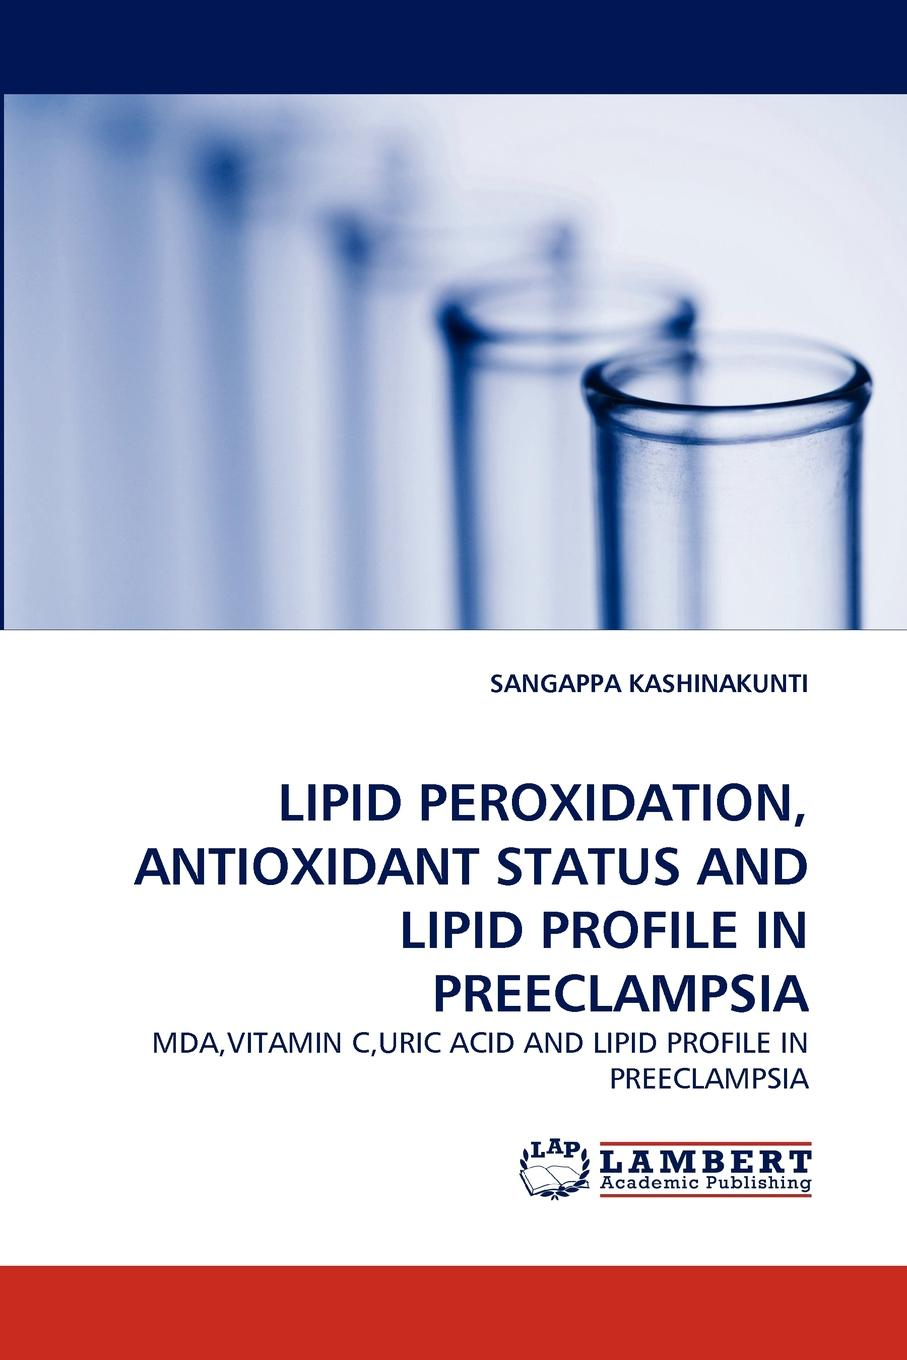 SANGAPPA KASHINAKUNTI LIPID PEROXIDATION, ANTIOXIDANT STATUS AND LIPID PROFILE IN PREECLAMPSIA 1c31122g01 used in good condition can normal working